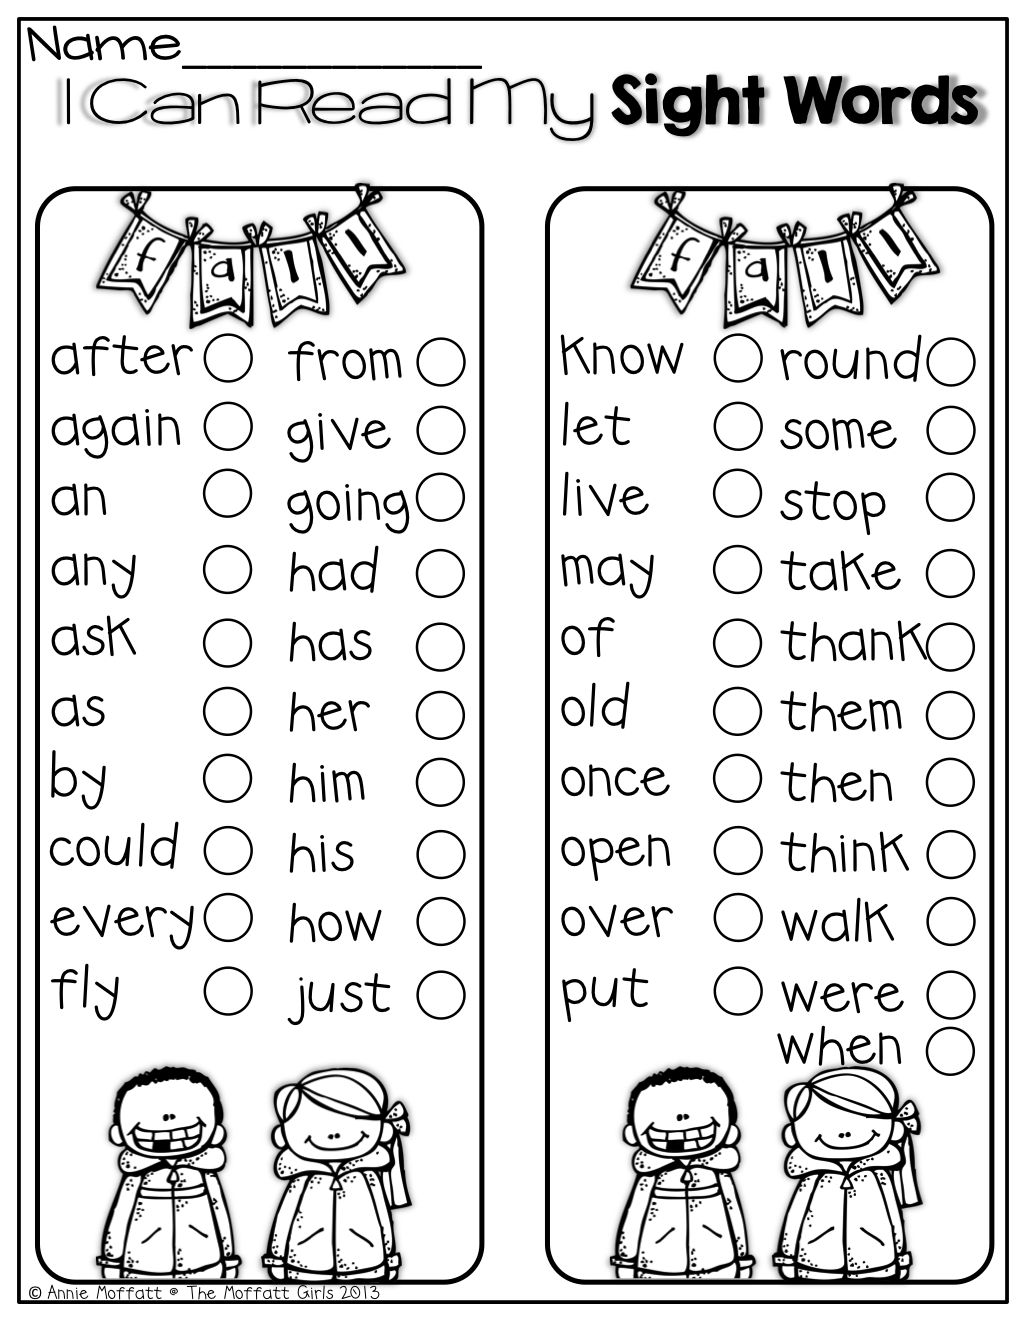 I Can Read My Sight Words Perfect For Keeping Track Of